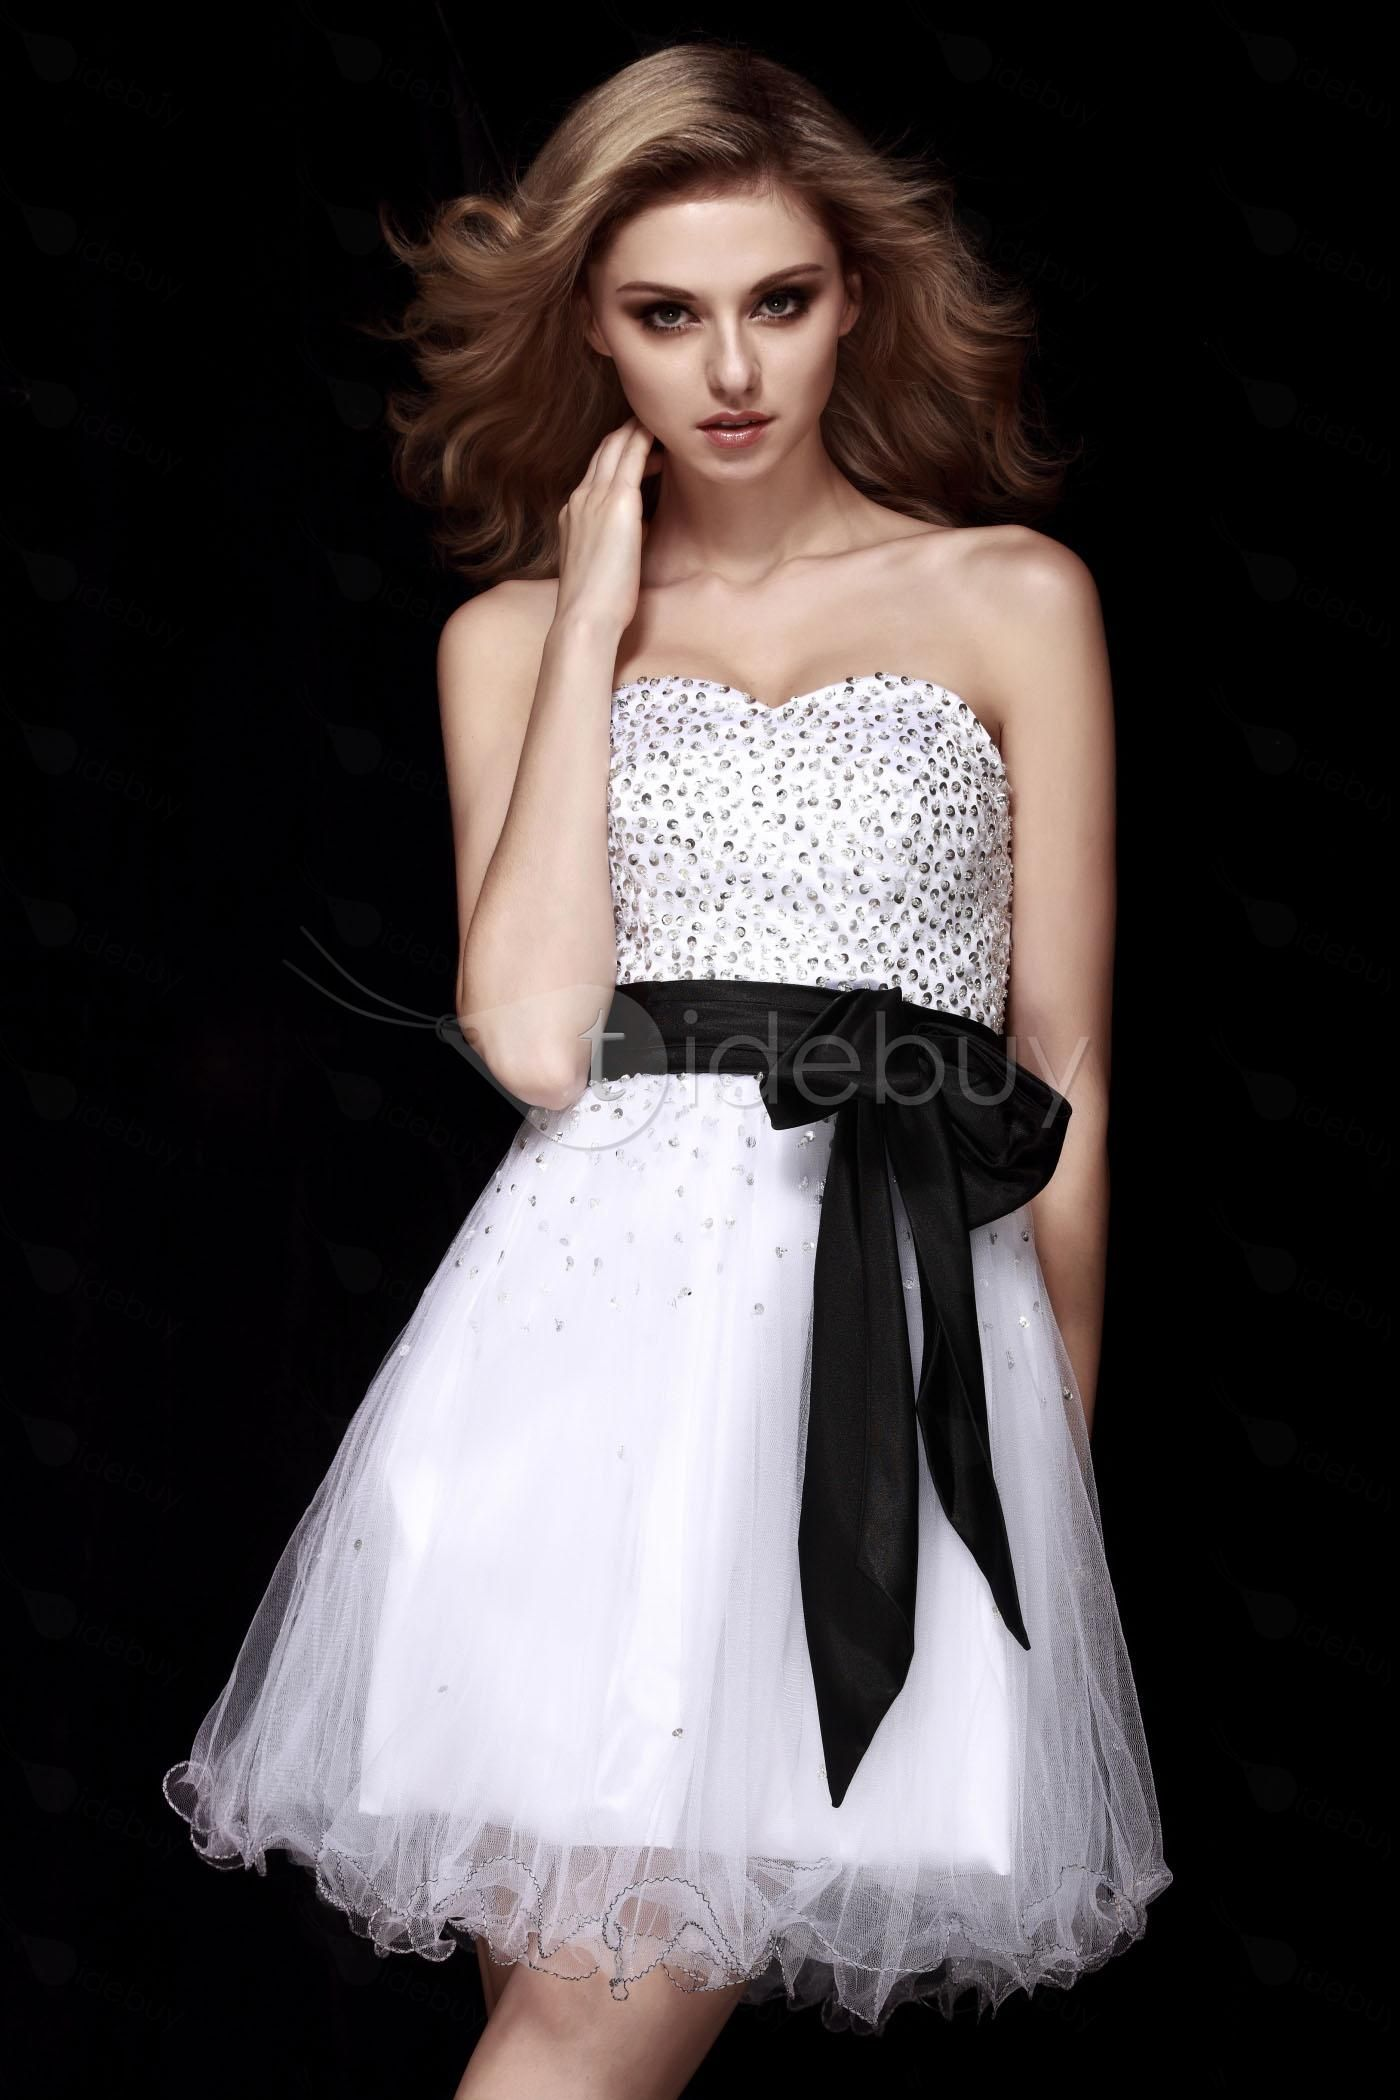 Fancy A-line Sweetheart Short/Mini Dasha's Cocktail/Homecoming Dress via Tidebuy. Black, white and sparkly, Grace Kelly/Lisa Fremont inspired.